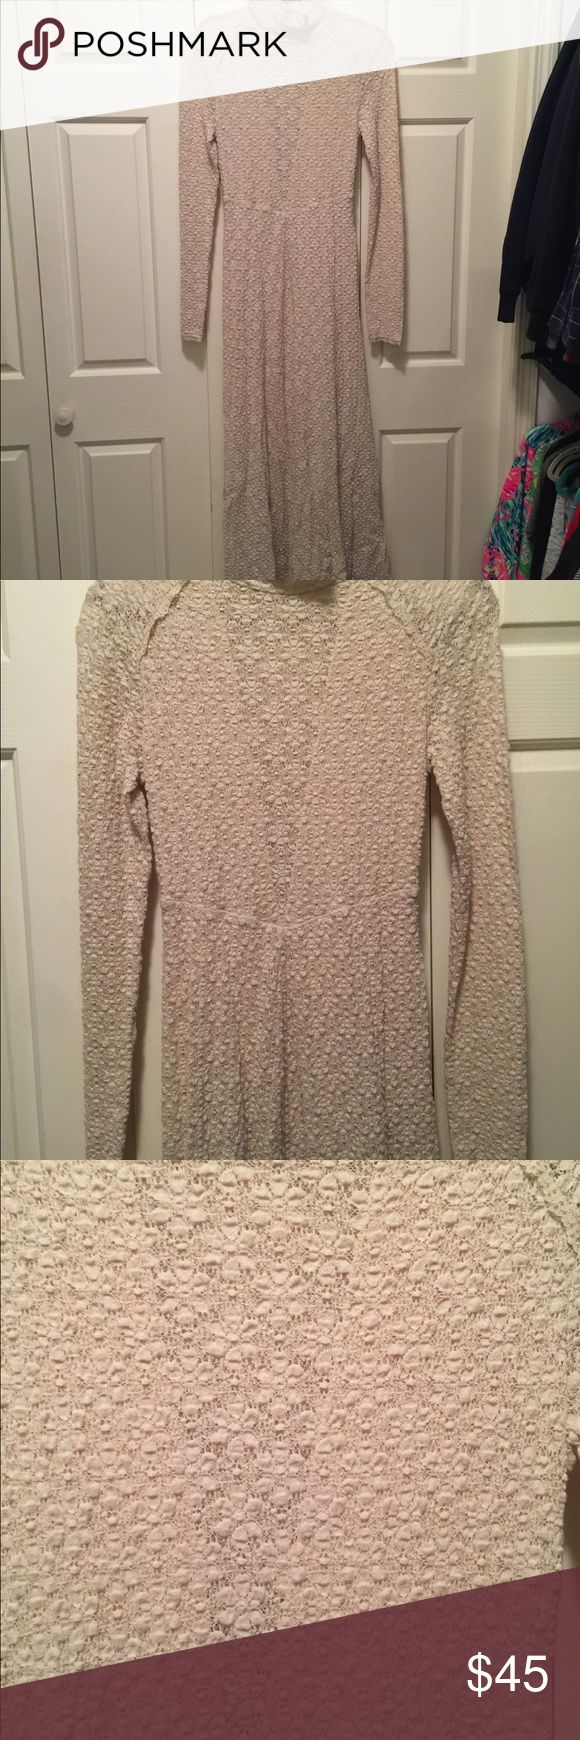 Free People Dress size M Free People Beautiful Cream color dress. Size medium. In great shape. Only worn once. Free People Dresses Long Sleeve